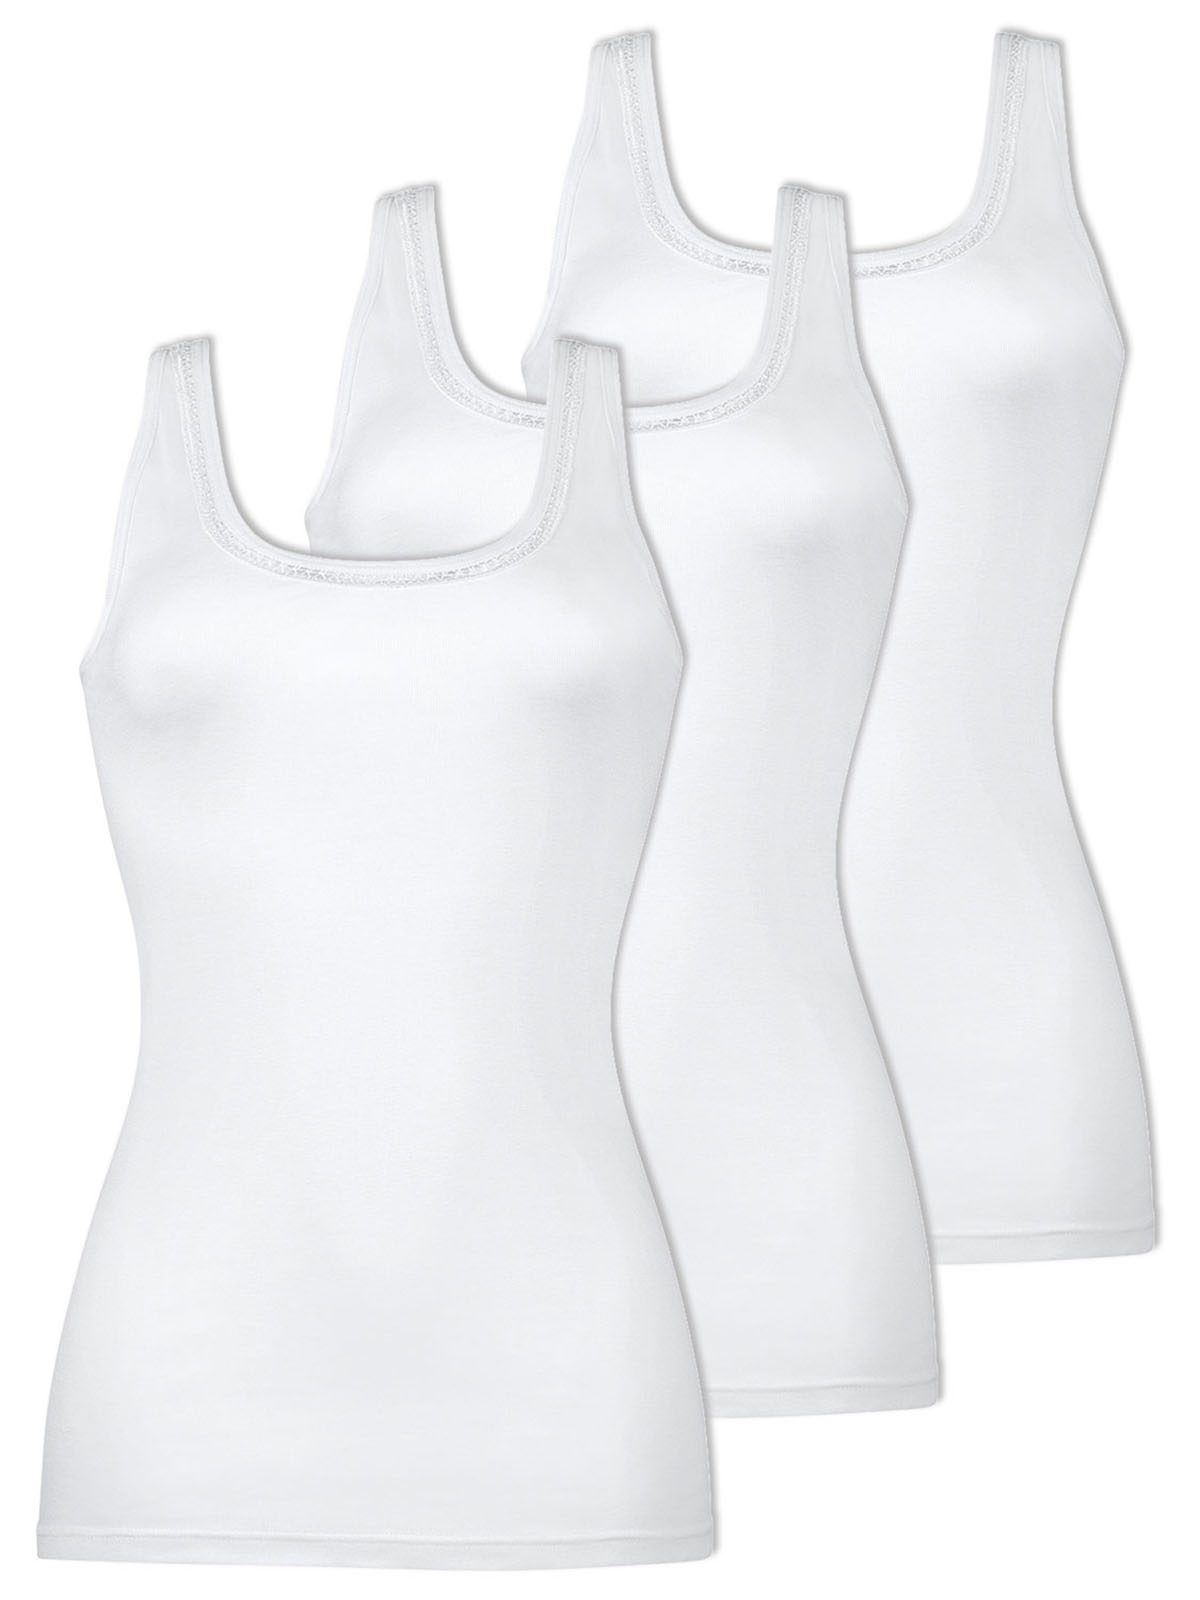 Naturana Pack of 3 Women's Undervest 2535